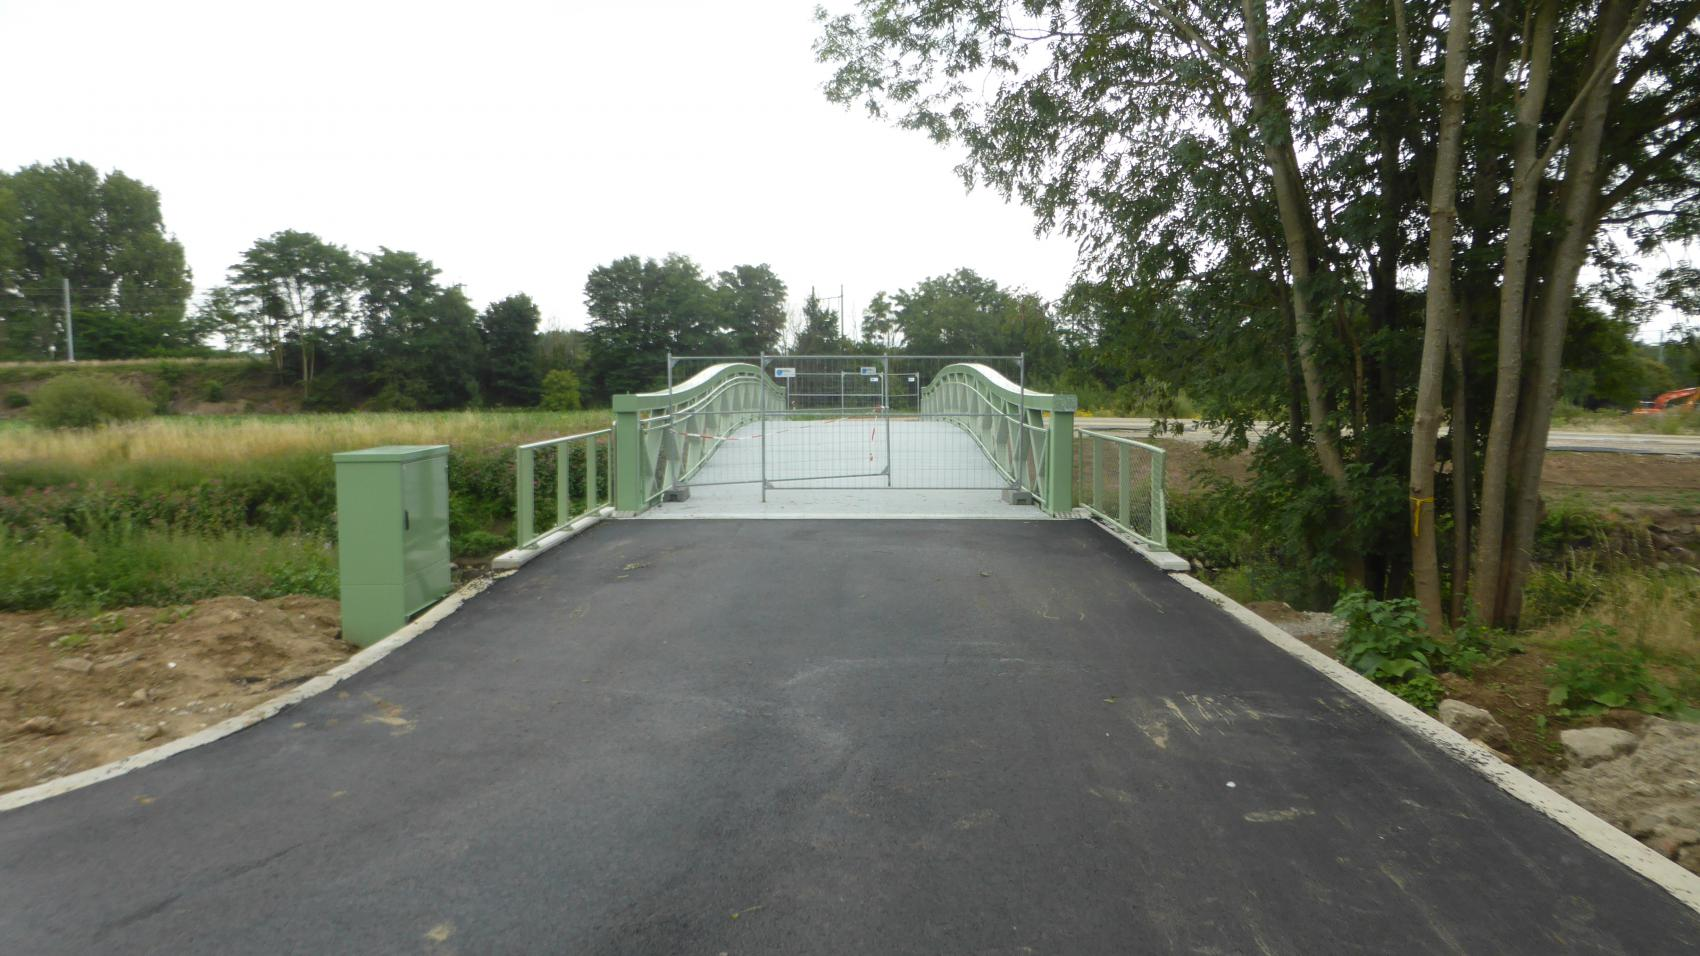 New cycling bridge over Zenne in Eppegem. The bridge is 5 m wide to provide 4 m of safe riding width and 0.5 m of shoulder on each side.